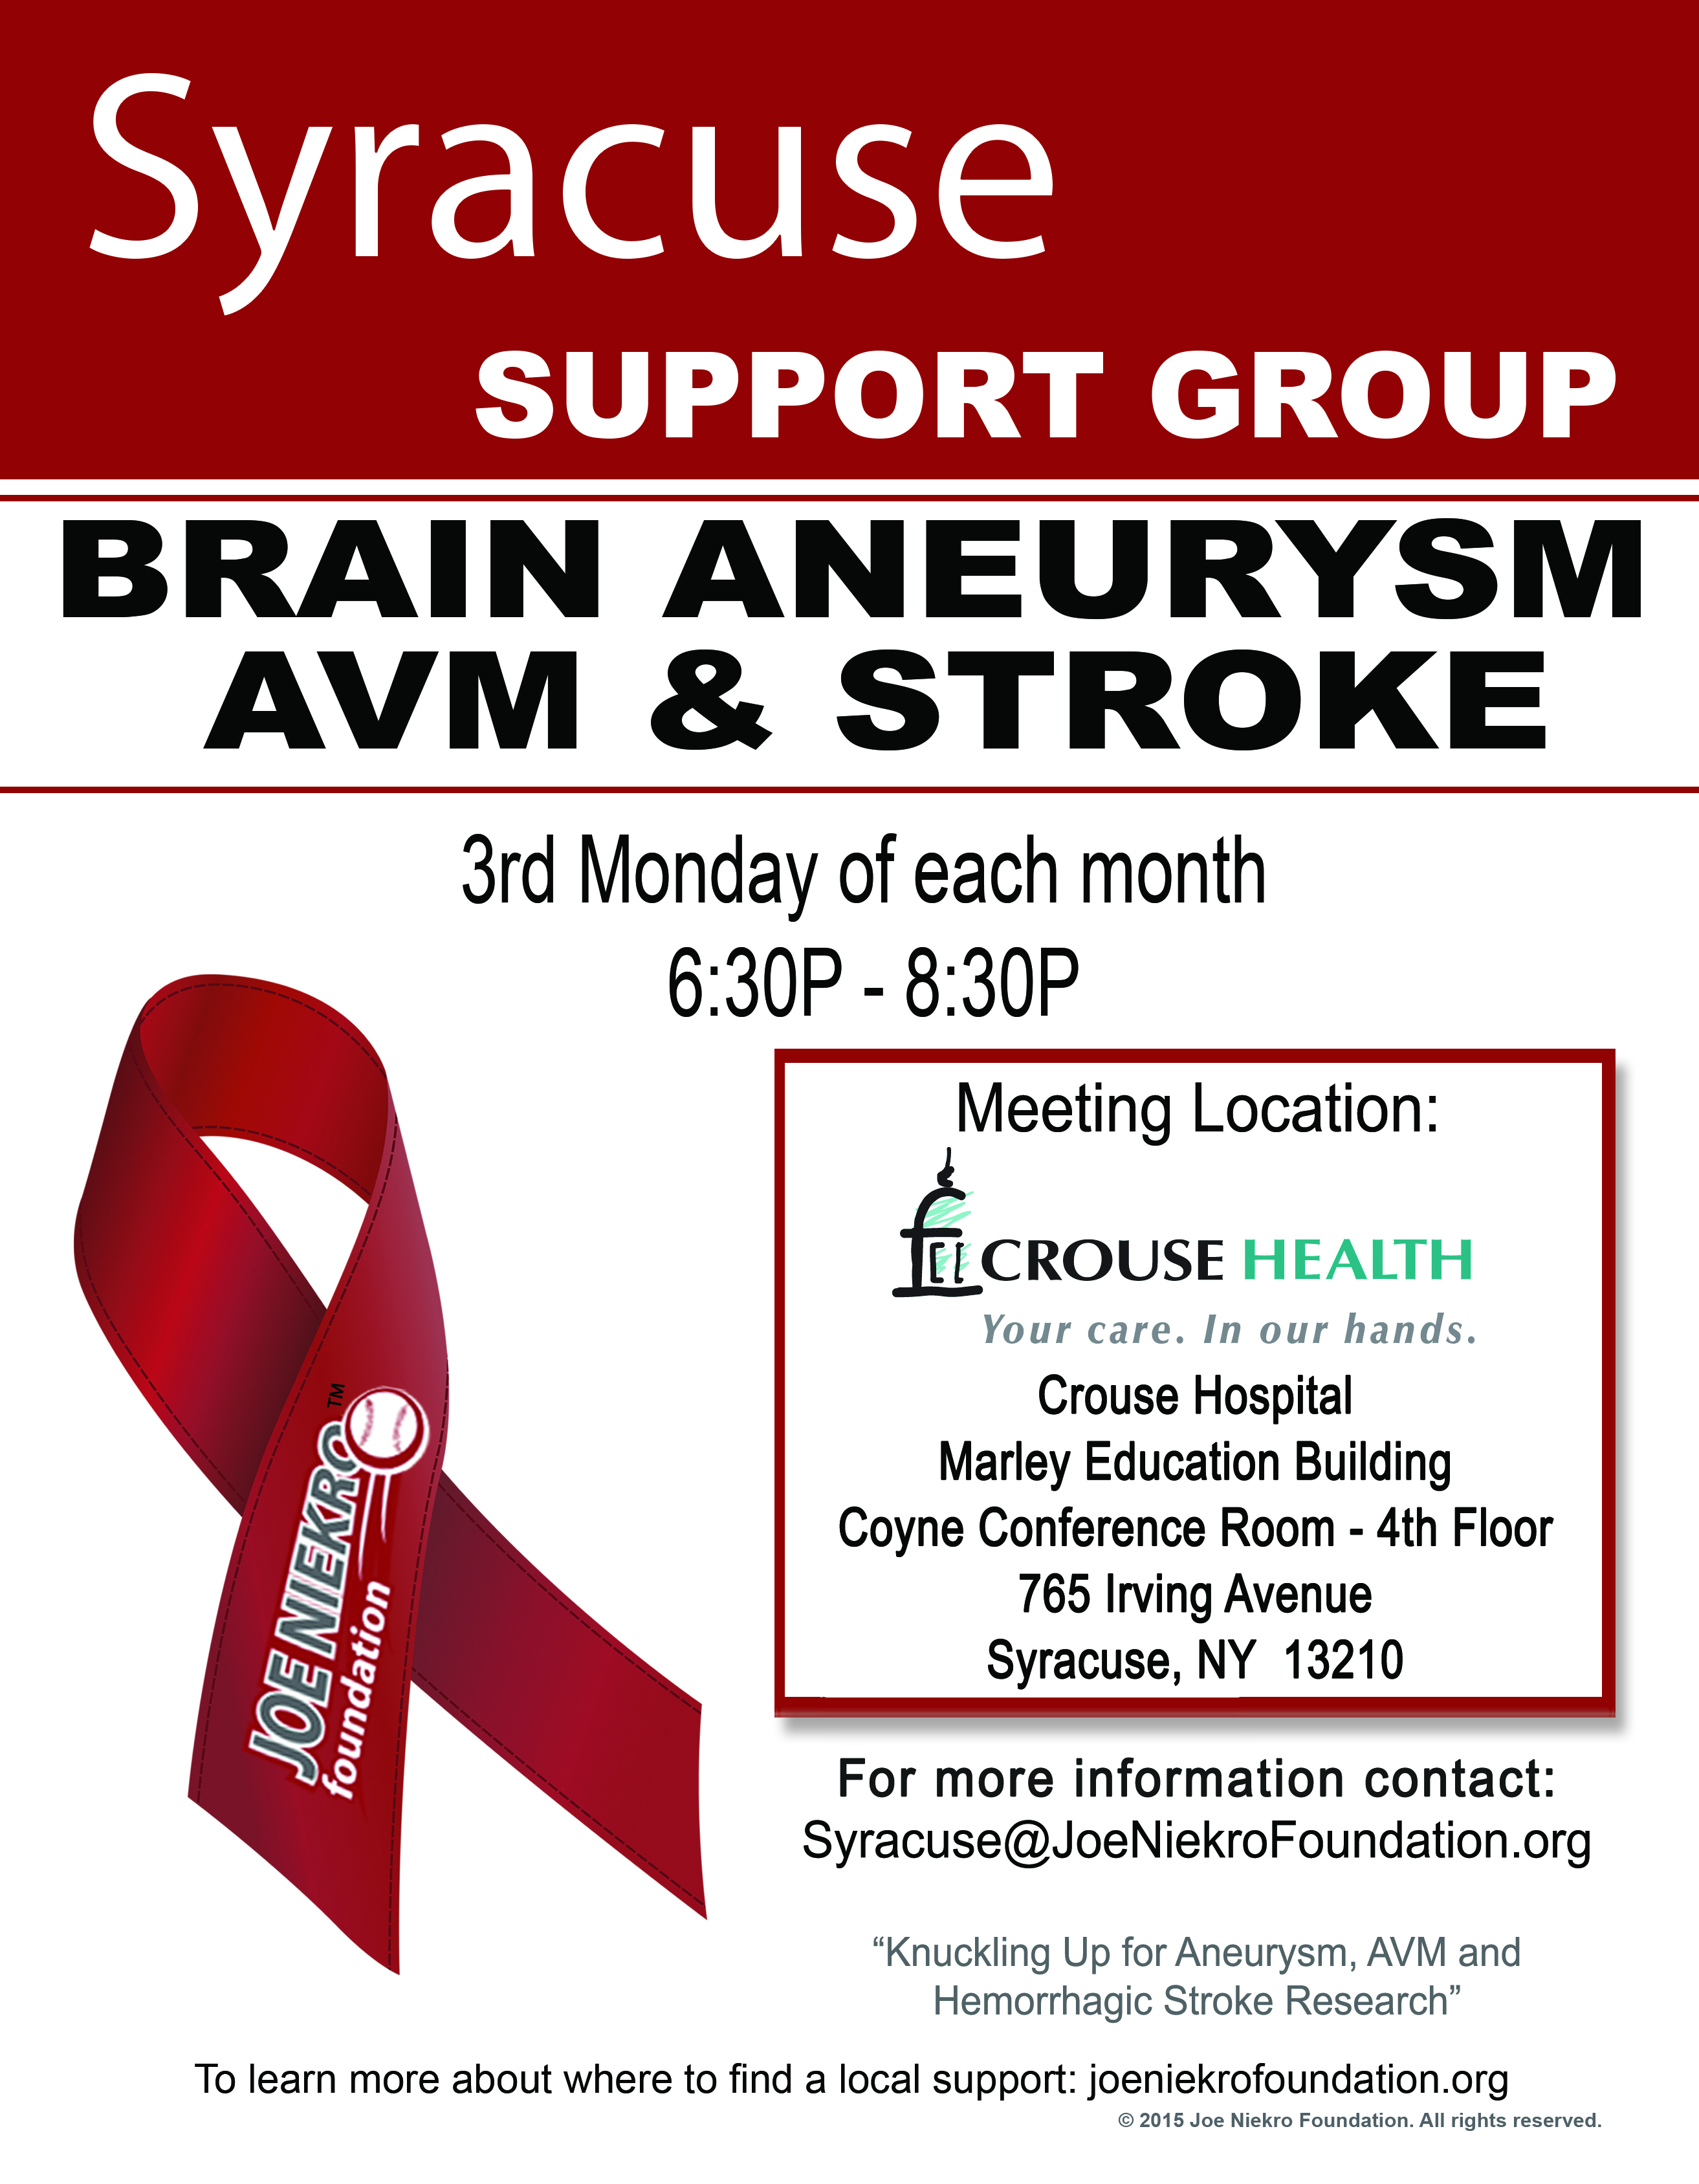 http://www.joeniekrofoundation.com/patient-caregiver-support/support-groups/locations/attachment/syracuse-poster/